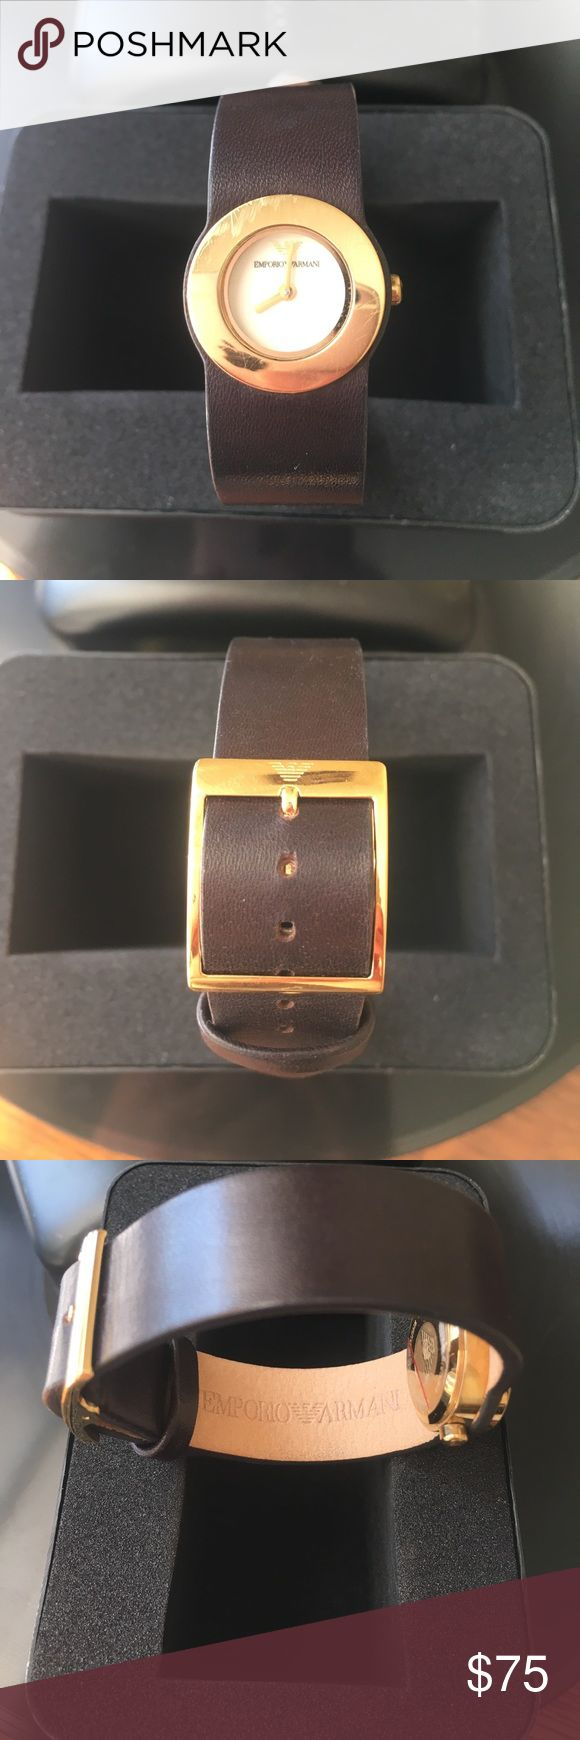 Emporio Armani Brown Leather Watch Ladies watch, comes in its original case. I'm petite and it fits me perfectly. It does need a battery but looks like a cute bracelet even if you don't replace the battery right away. Pretty dark brown leather with gold face and buckle. I paid $150 for it originally and only wore it a couple times. There is very minimal scratching on the gold around the face but only if you are looking very hard for it (see pics). Leather has no flaws. Let me know if you…